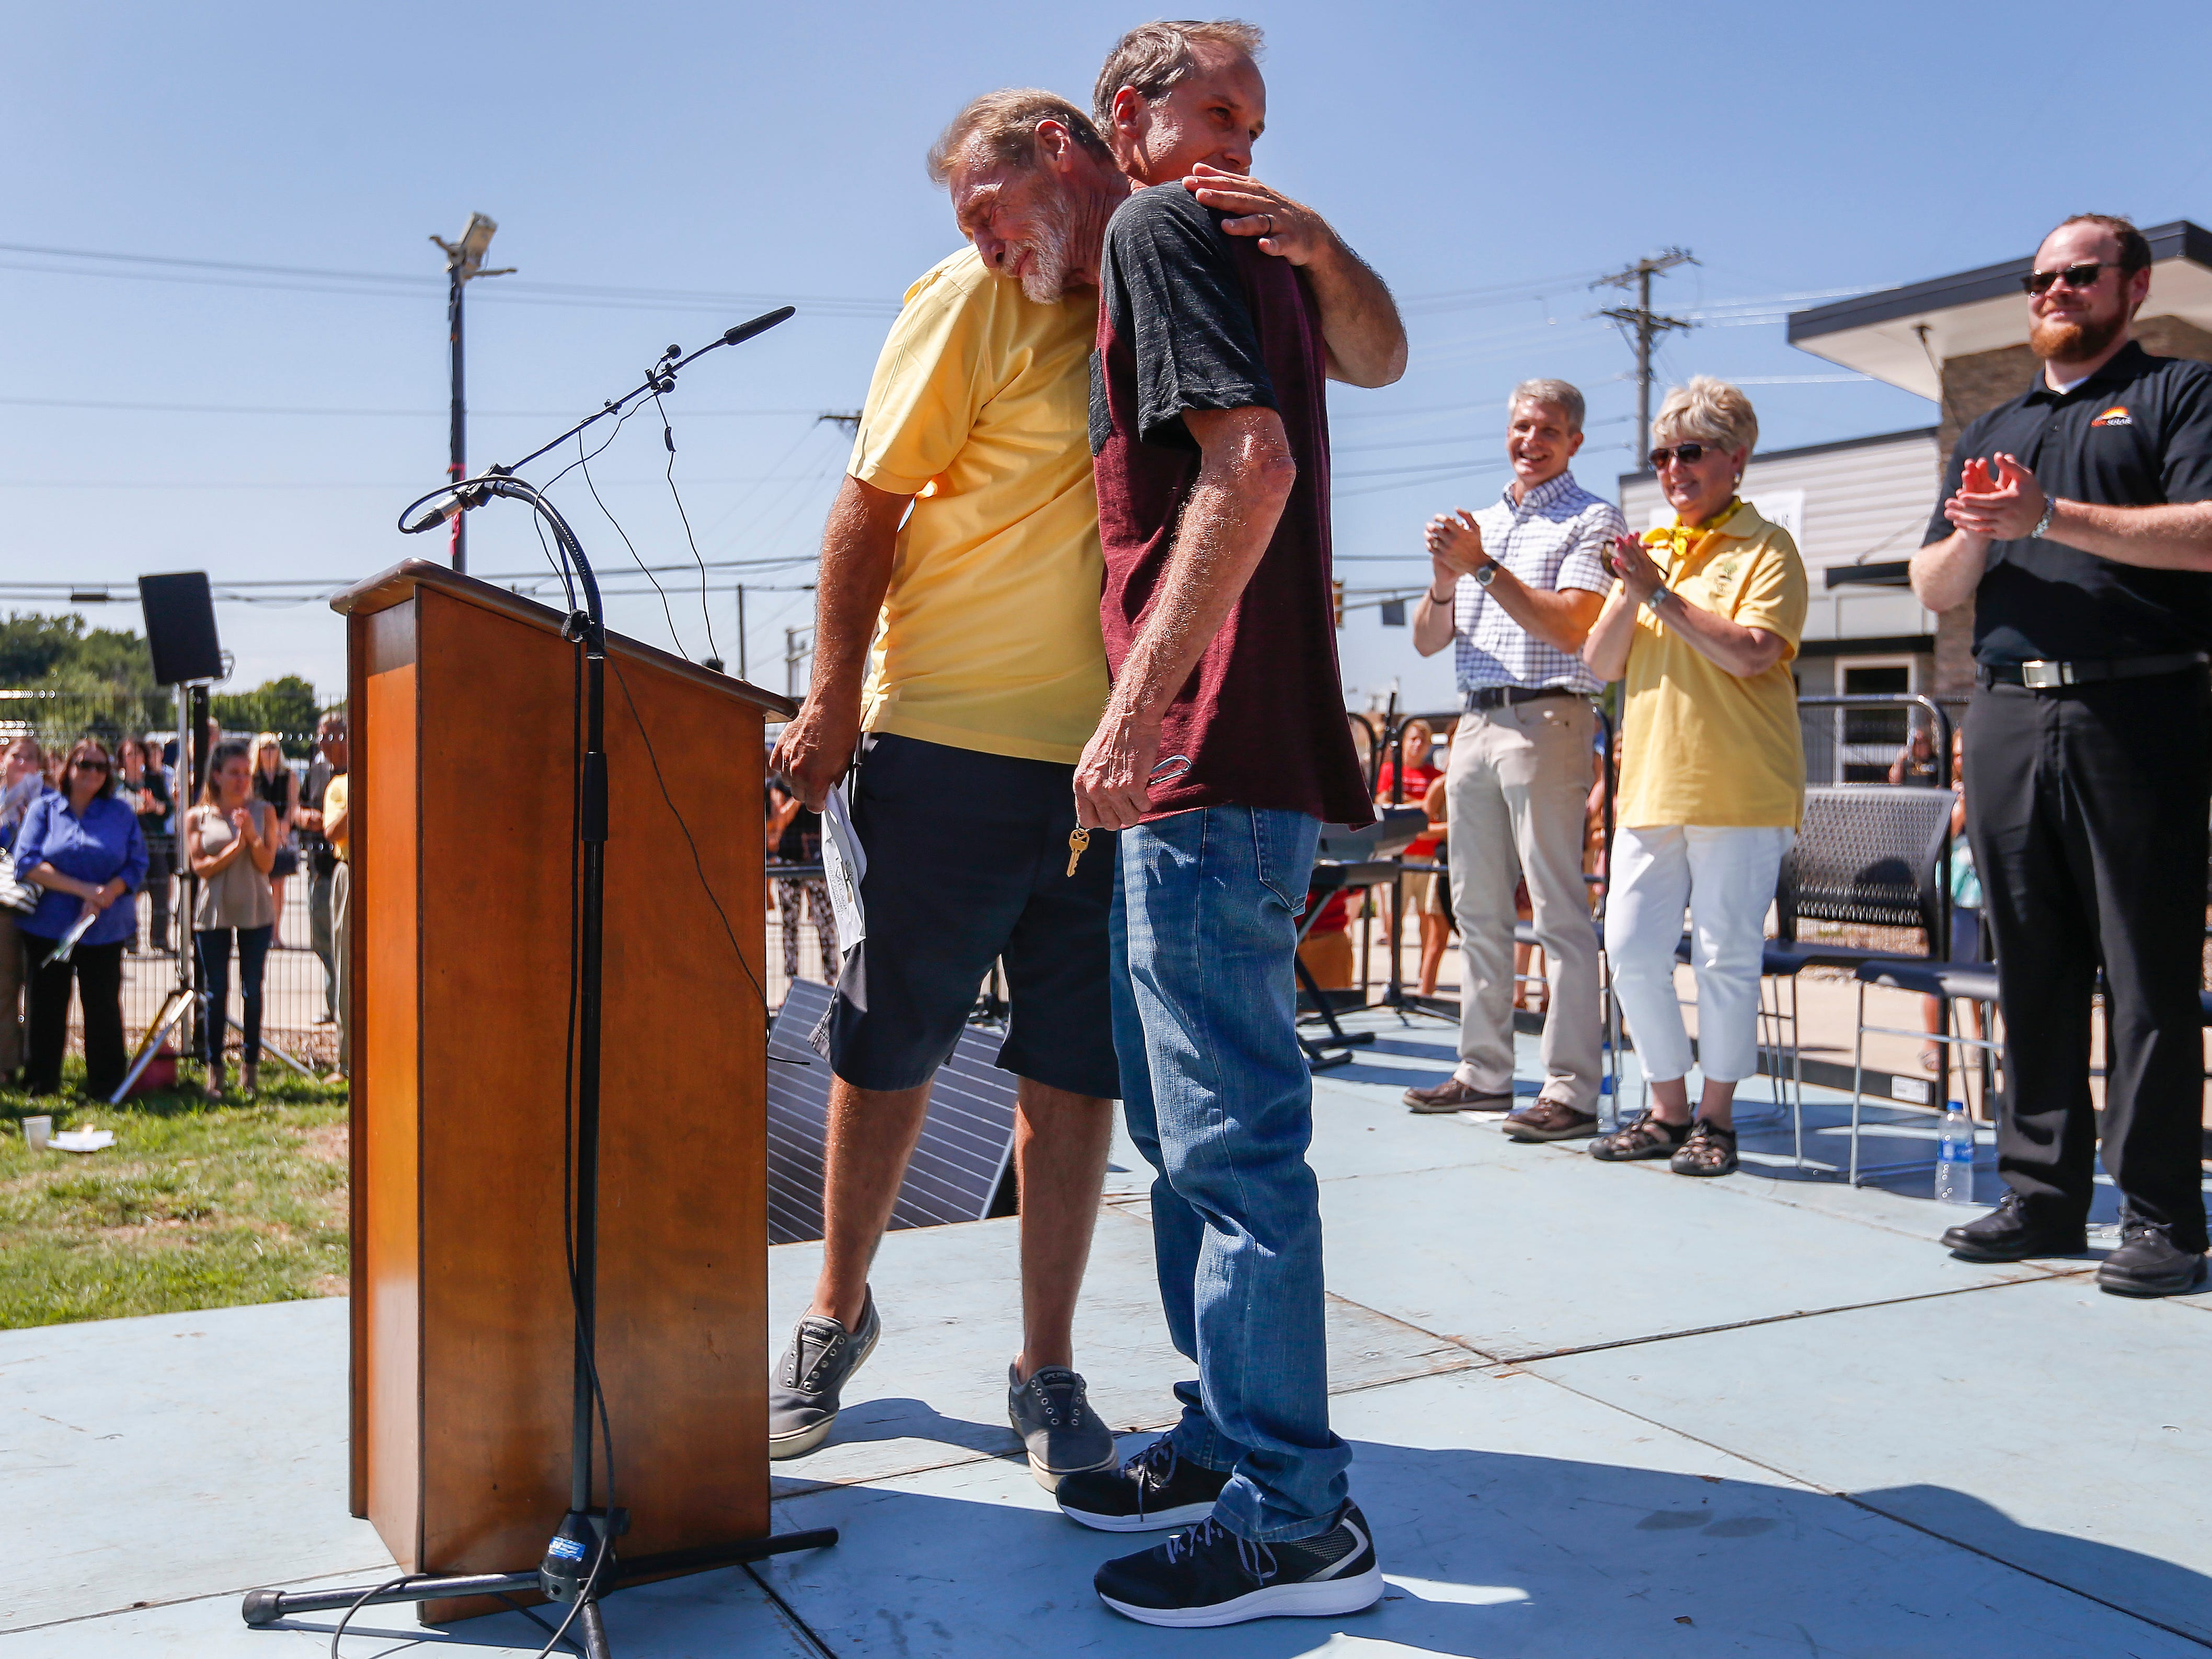 Nate Schlueter, COO of Eden Village, hugs Tommy Yarberry after handing him the keys to the first tiny home during the Eden Village Grand Opening Ceremony on Tuesday, Aug. 28, 2018.